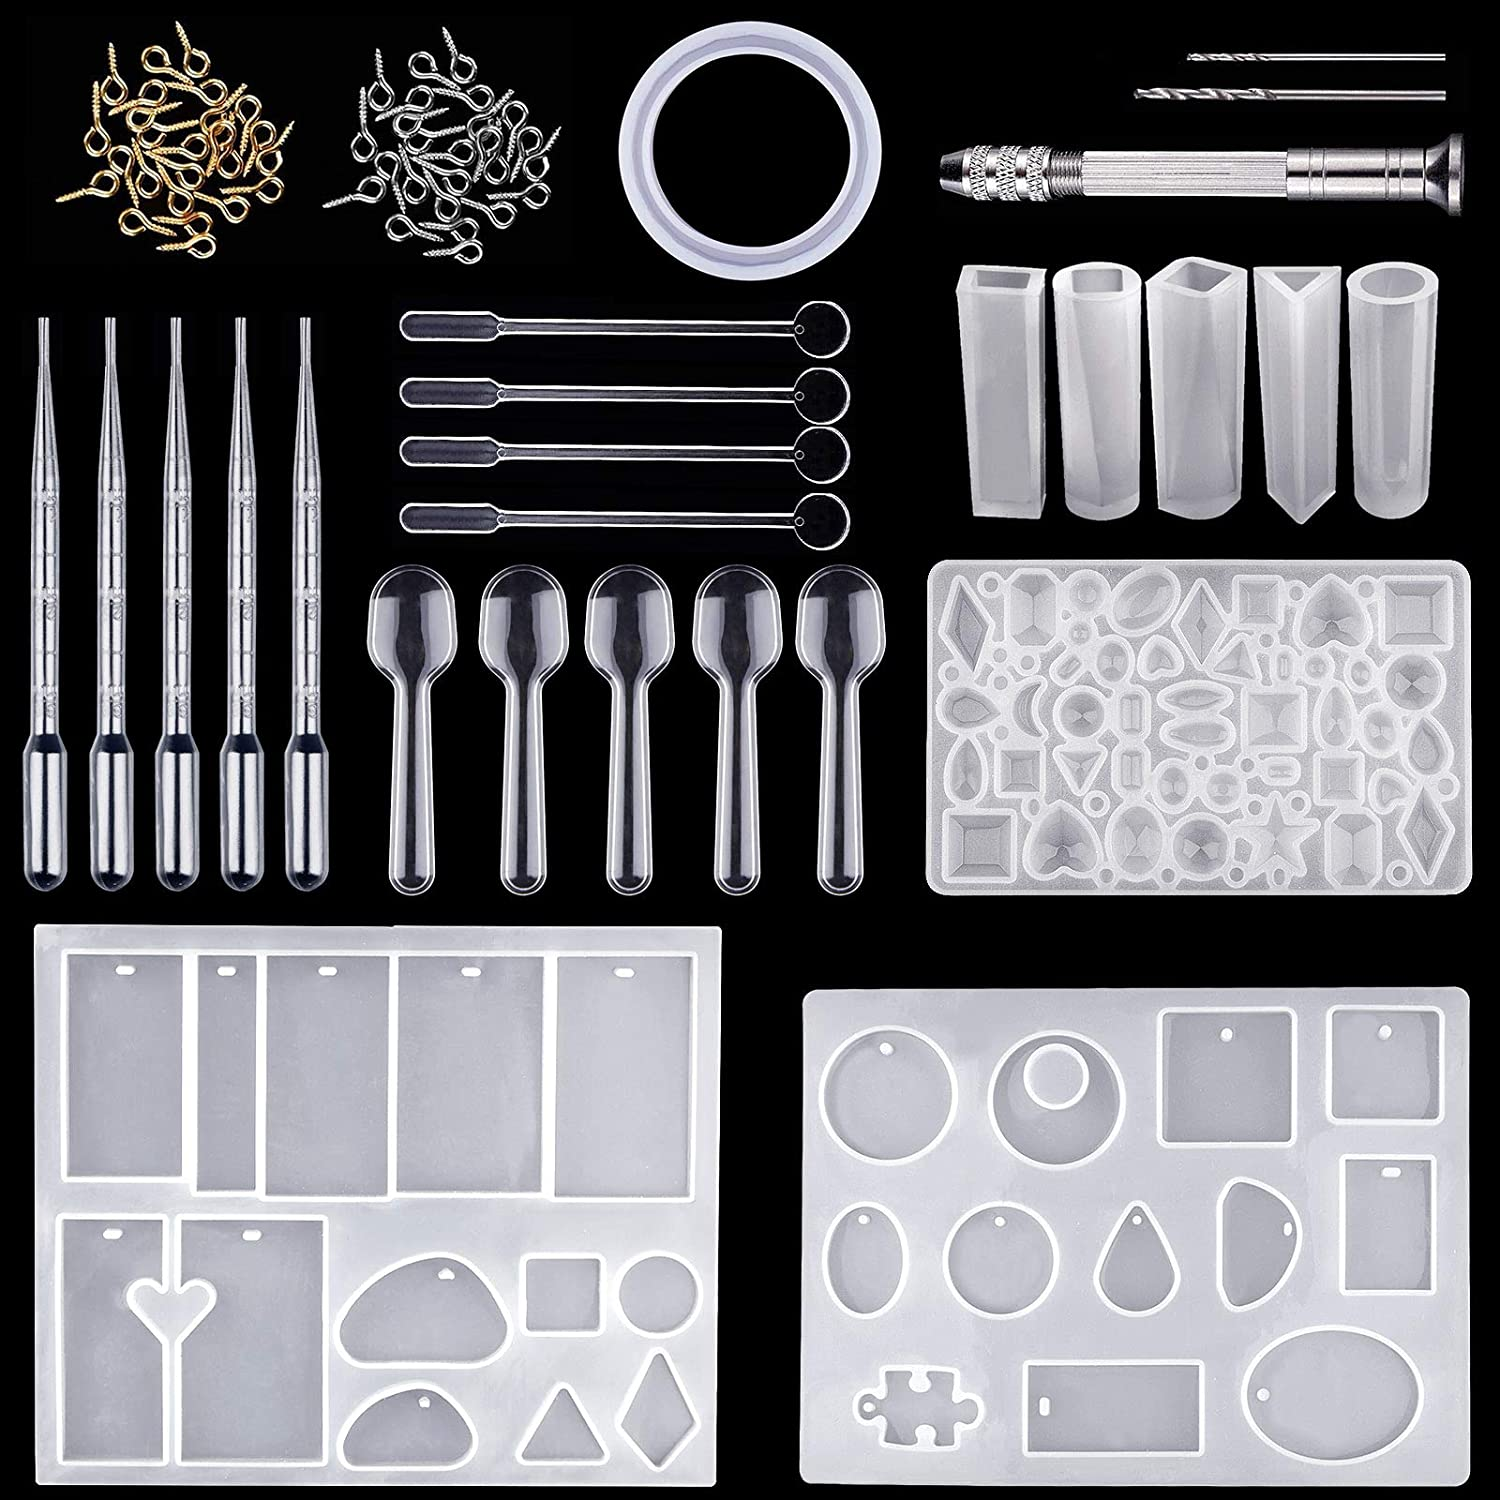 Resin Moulds for Jewellery Making Kit for Resin DIY Craft Diealles Shine127Pcs Resin Casting Molds and Tools Set